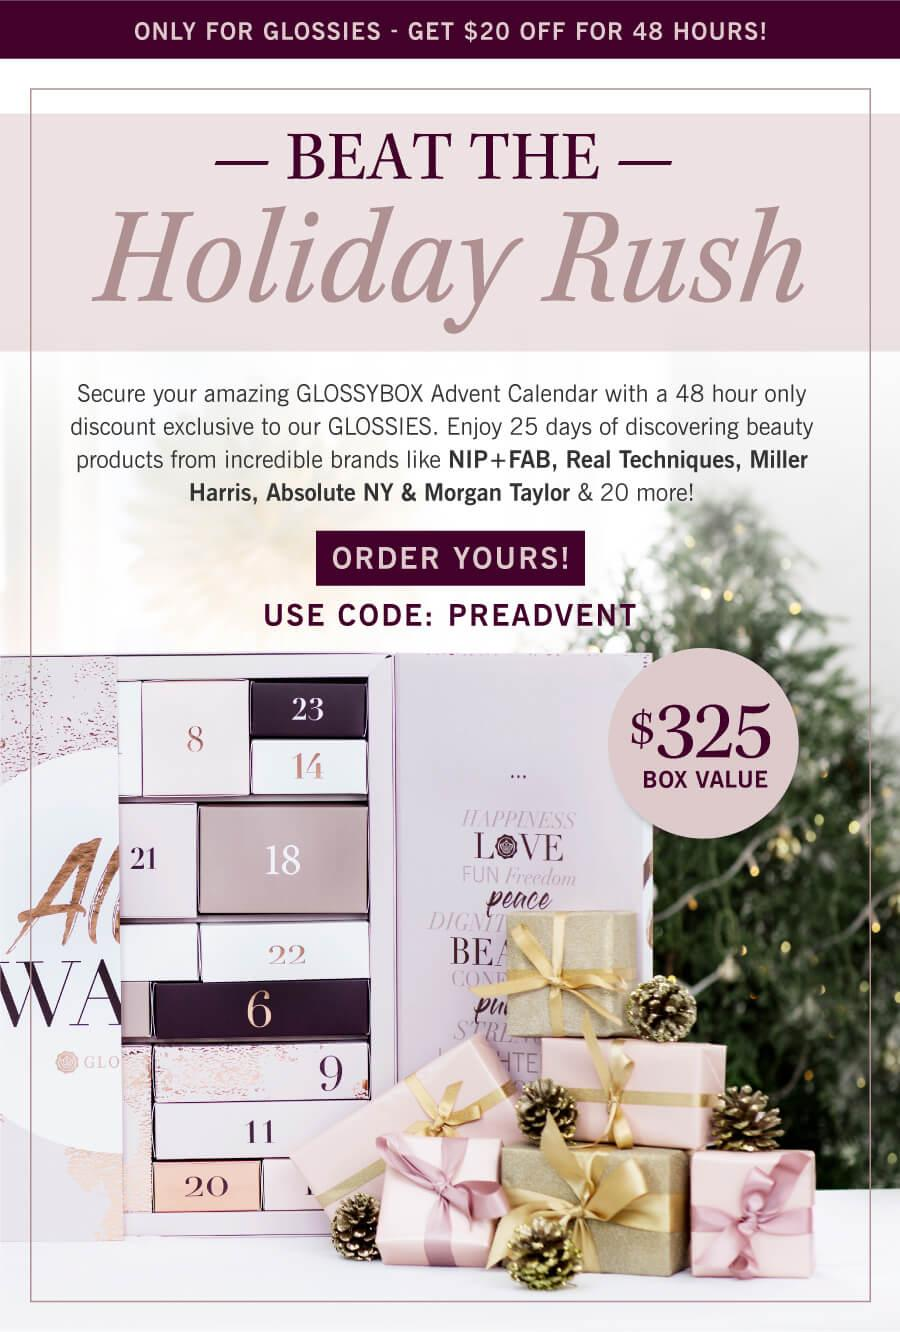 LAST CALL: GLOSSYBOX Limited Edition Advent Calendar – Now Available for Pre-Order + $20 Coupon Code